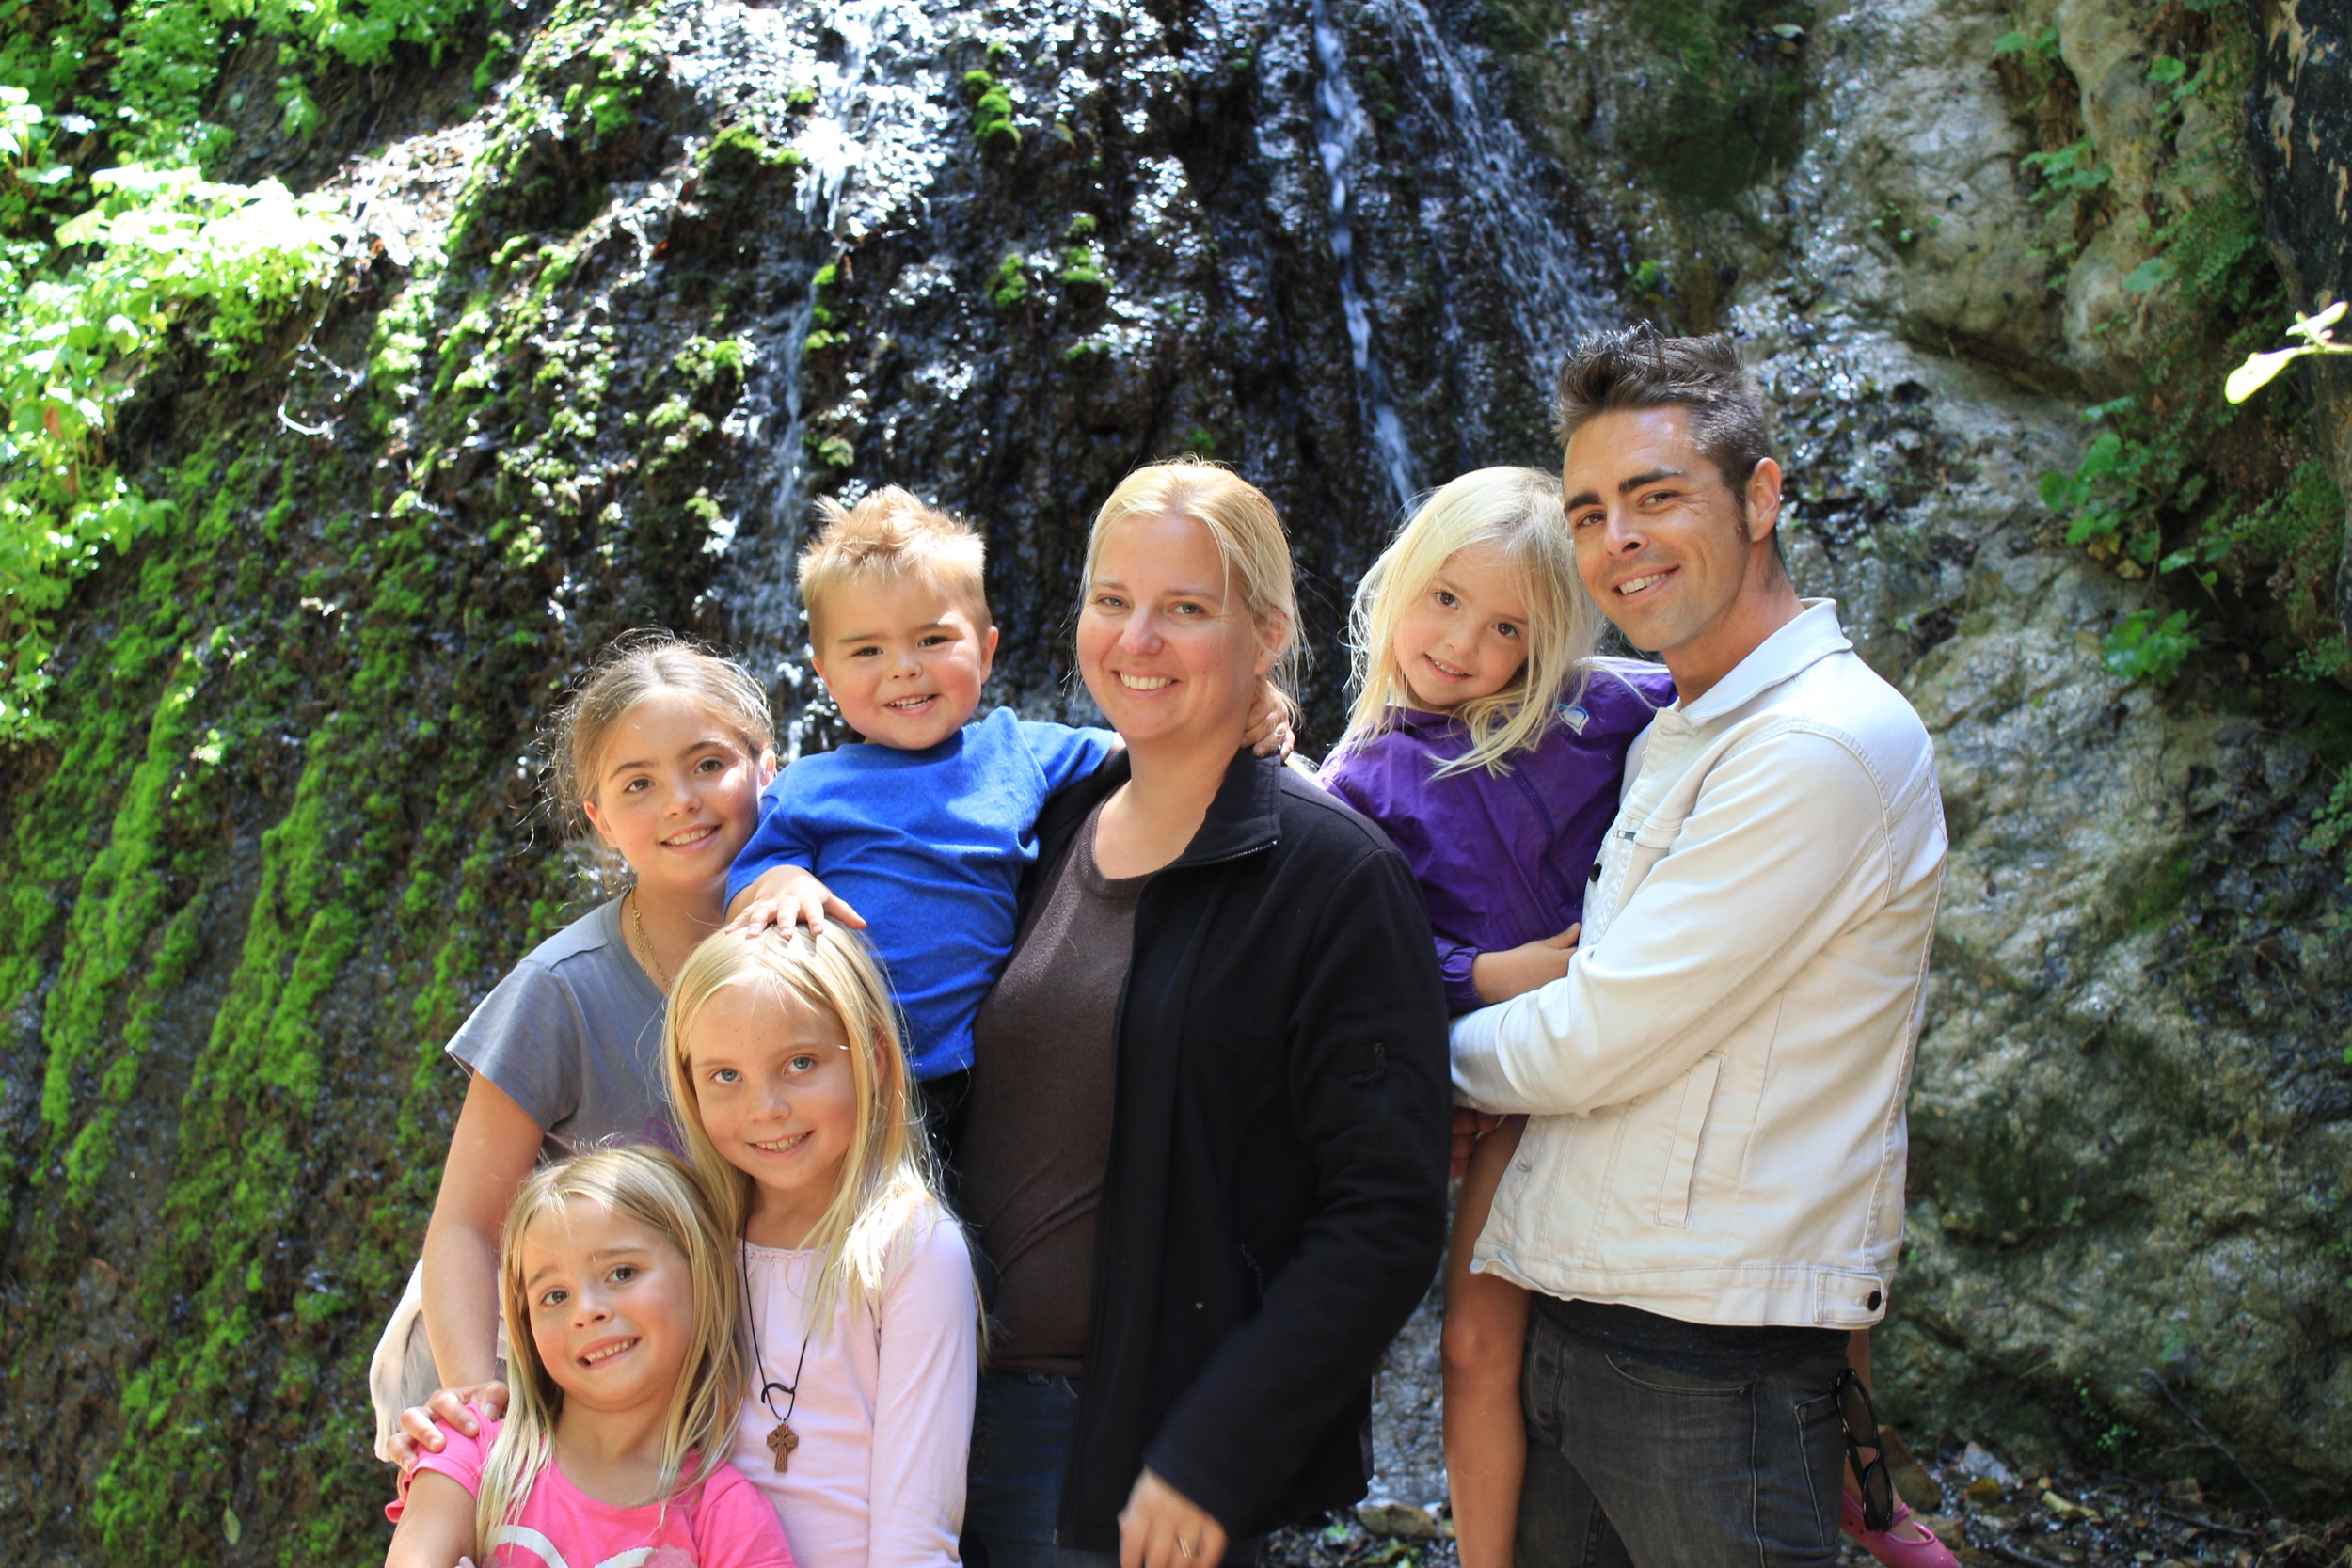 The Mette Family on a day off in California.